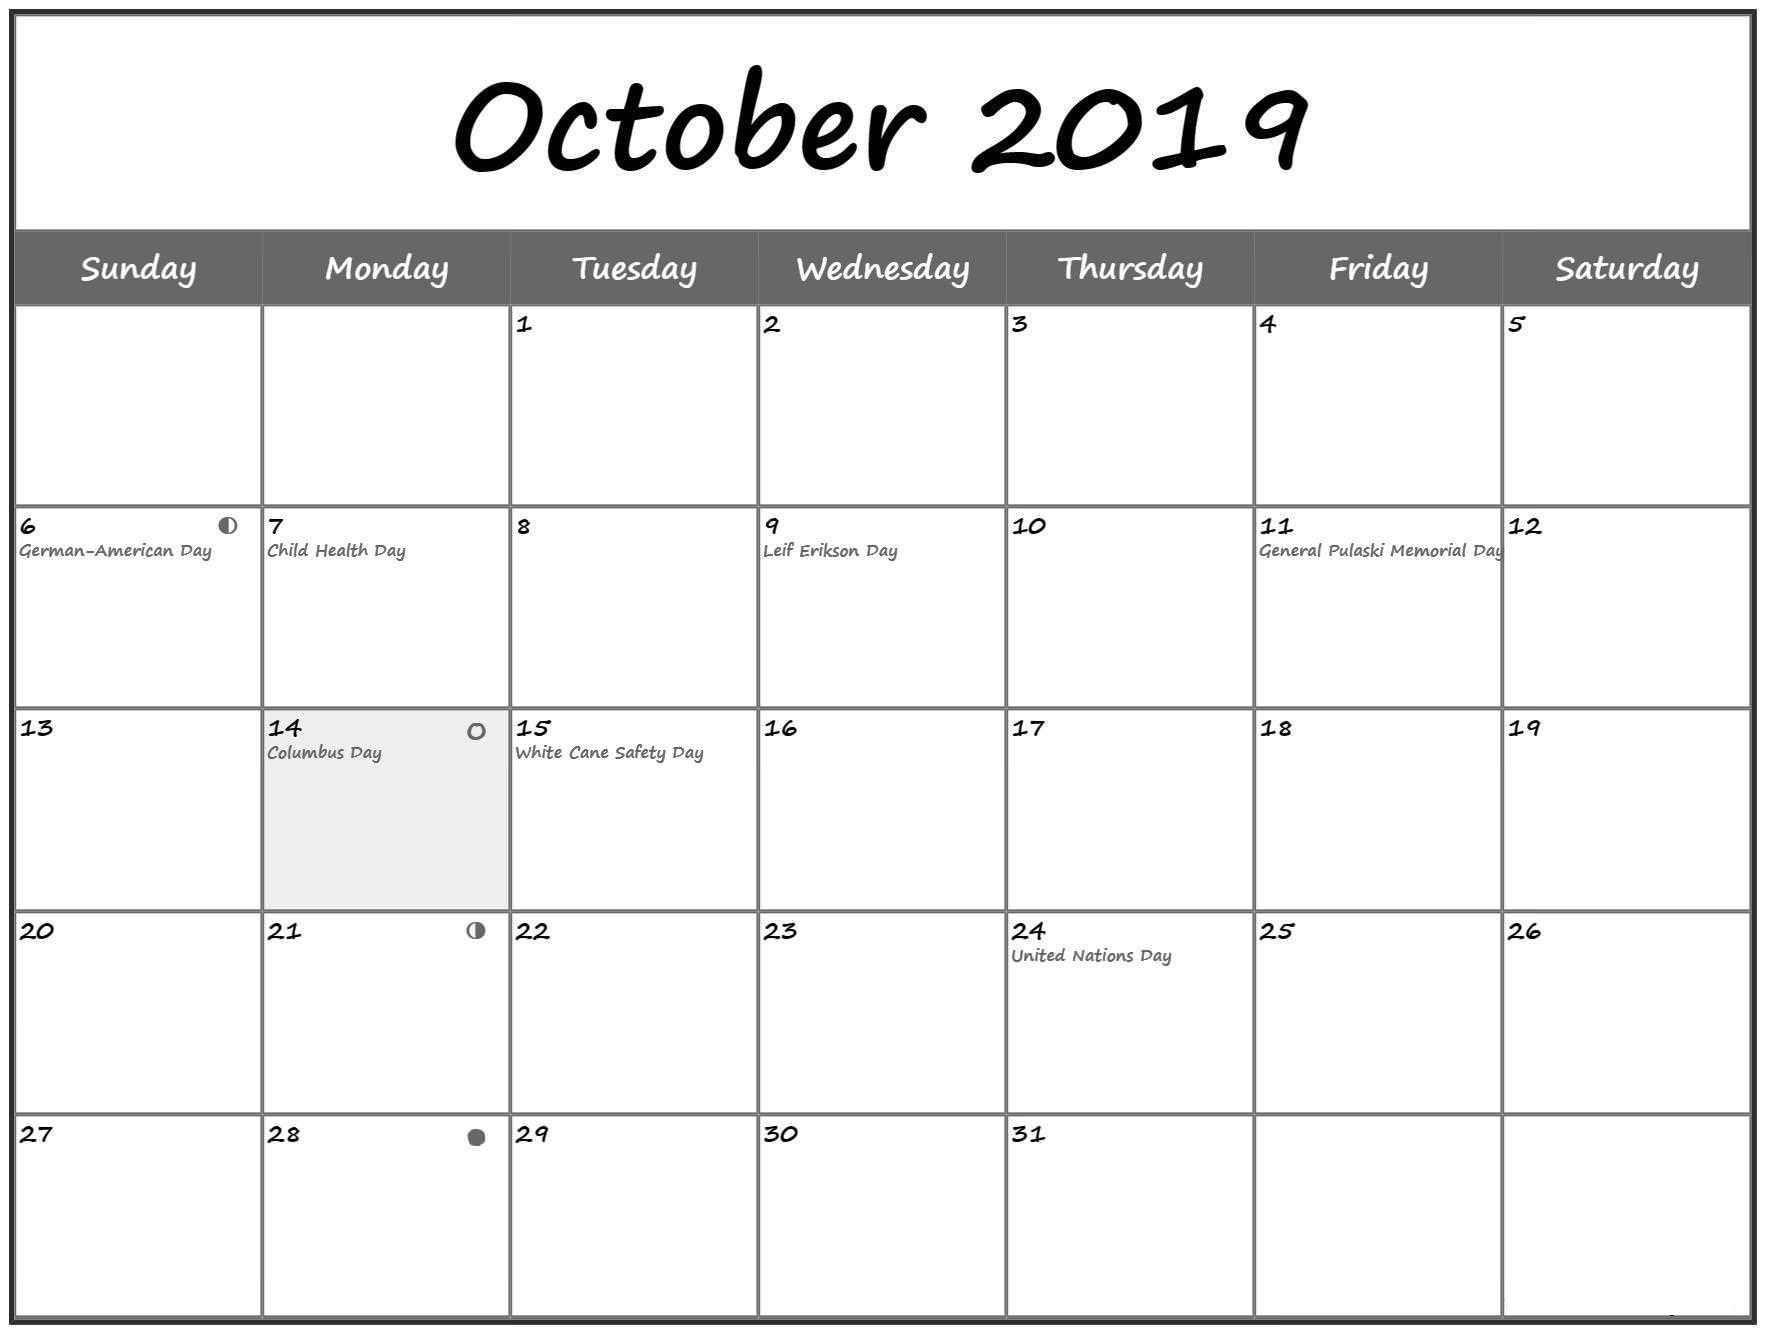 photo relating to Oct Calendar Printable Pdf referred to as Oct 2019 Calendar with Vacations Printable with Notes